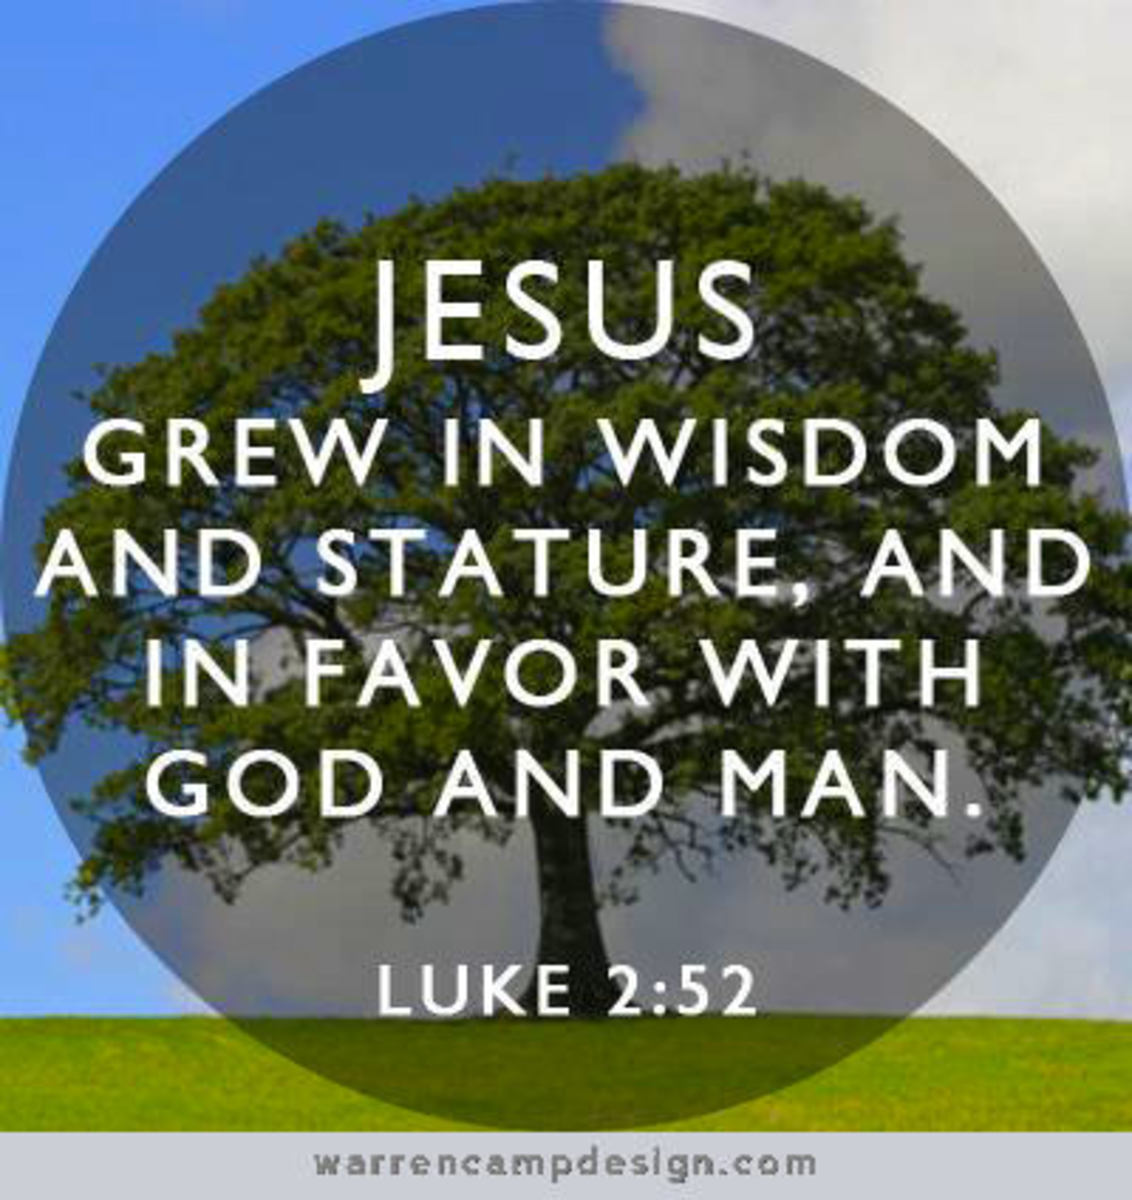 This statement summarizes Jesus' status when He was 12. We don't hear from Him until He was 30 years old.